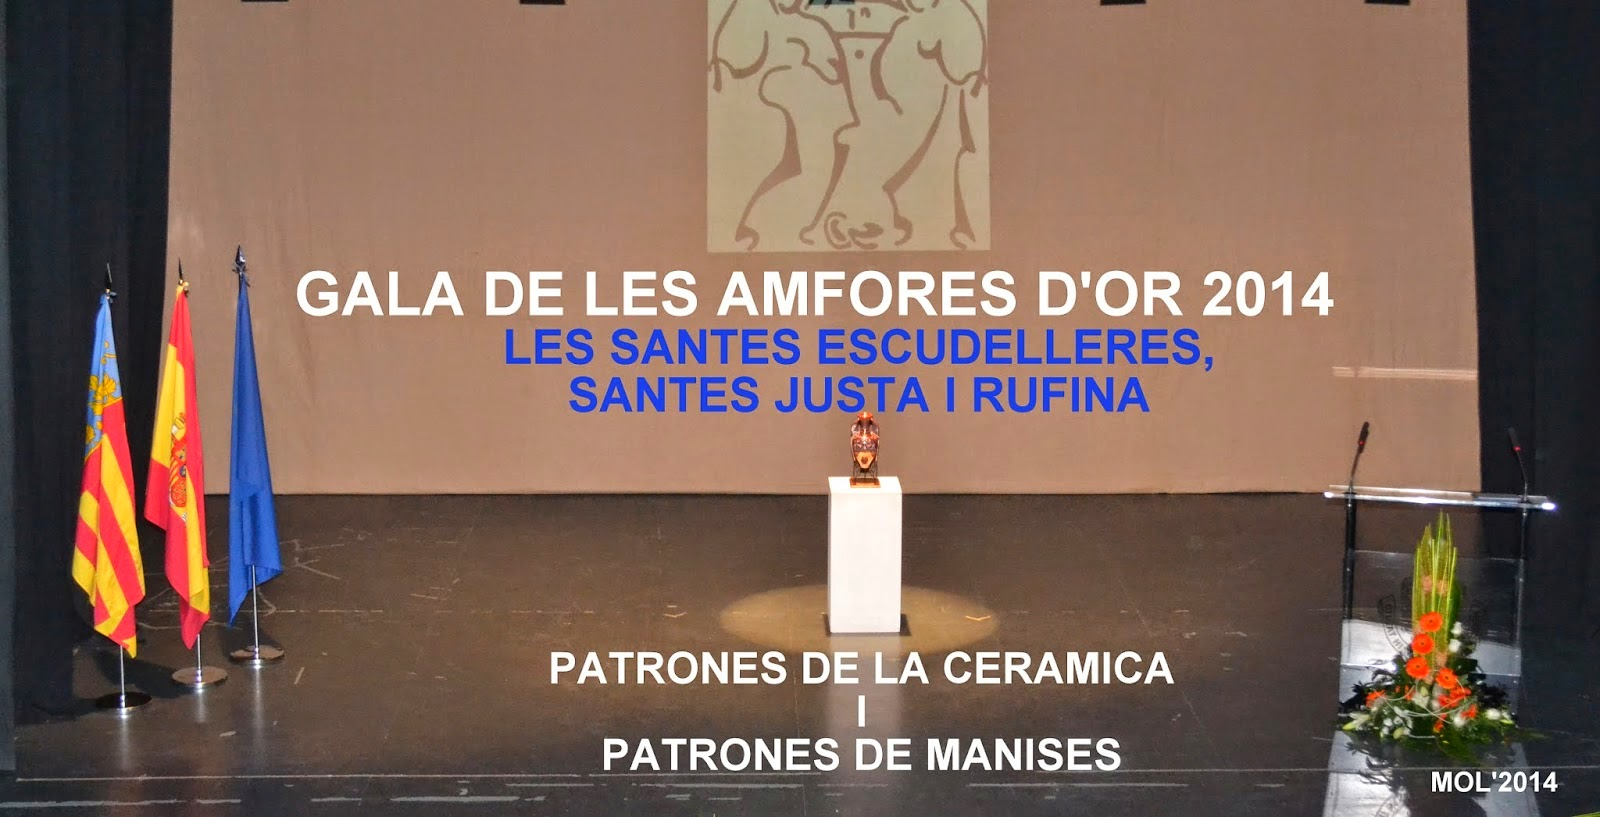 GALA DE L'AMFORA D'OR 2014, AUDITORIO GERMANÍAS, 15 DE JULIO.